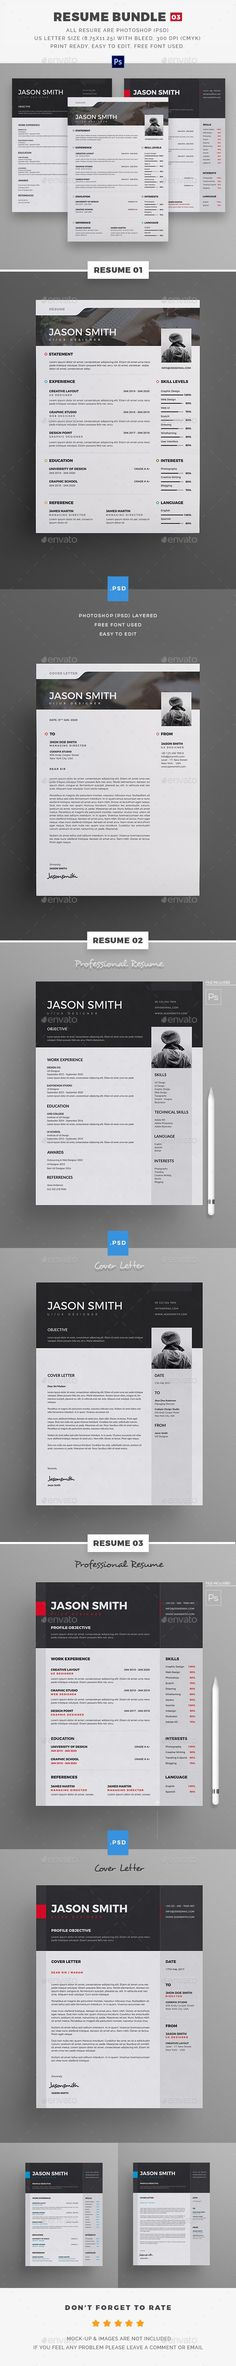 Sample Resume Download For Fresher Engineers%0A How to Write an Excellent Resume   Sample Template Example of Beautiful  Excellent Professional Curriculum Vitae   Resume   CV Format with Career O u